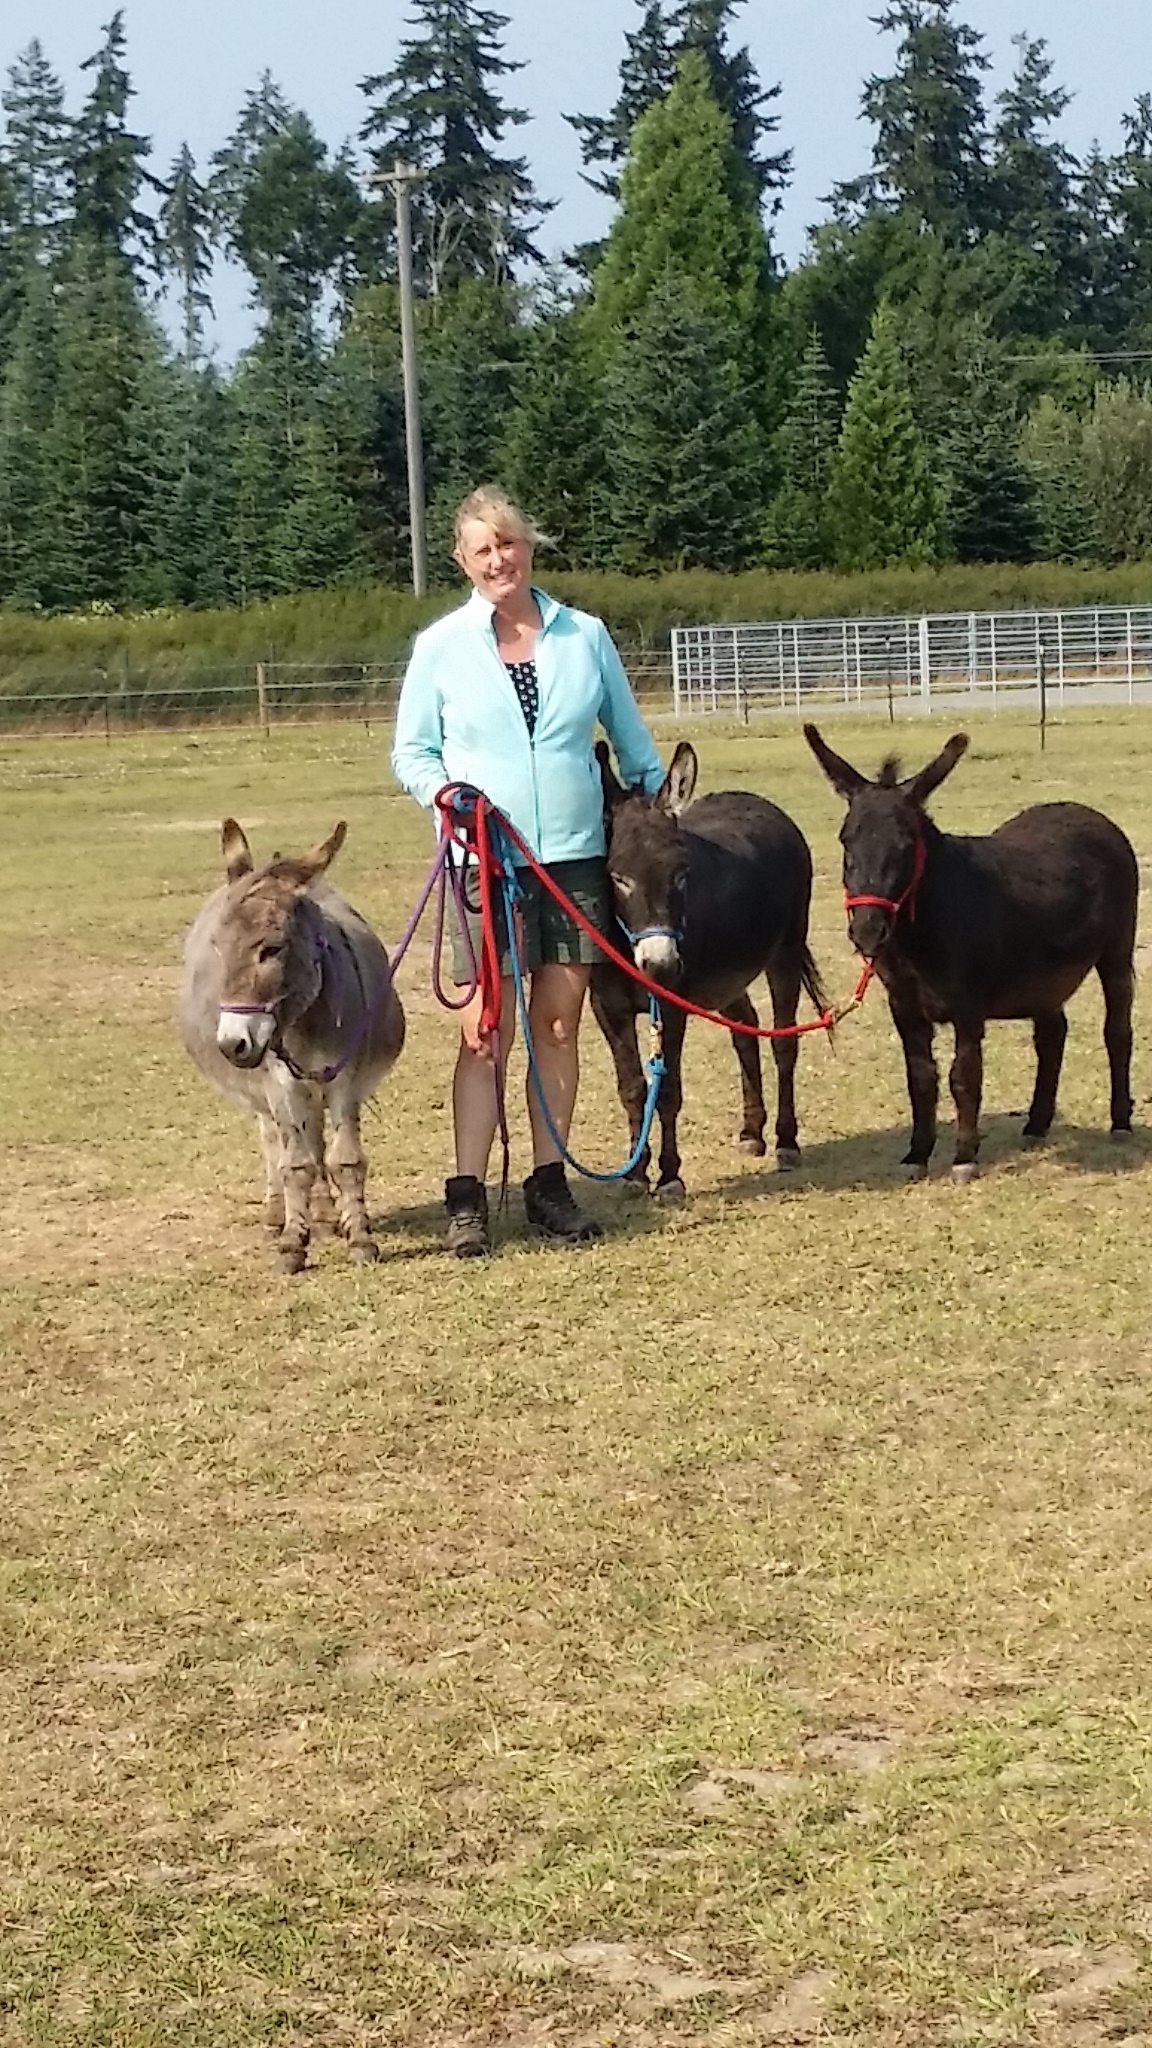 Farm donkeys - photo#26